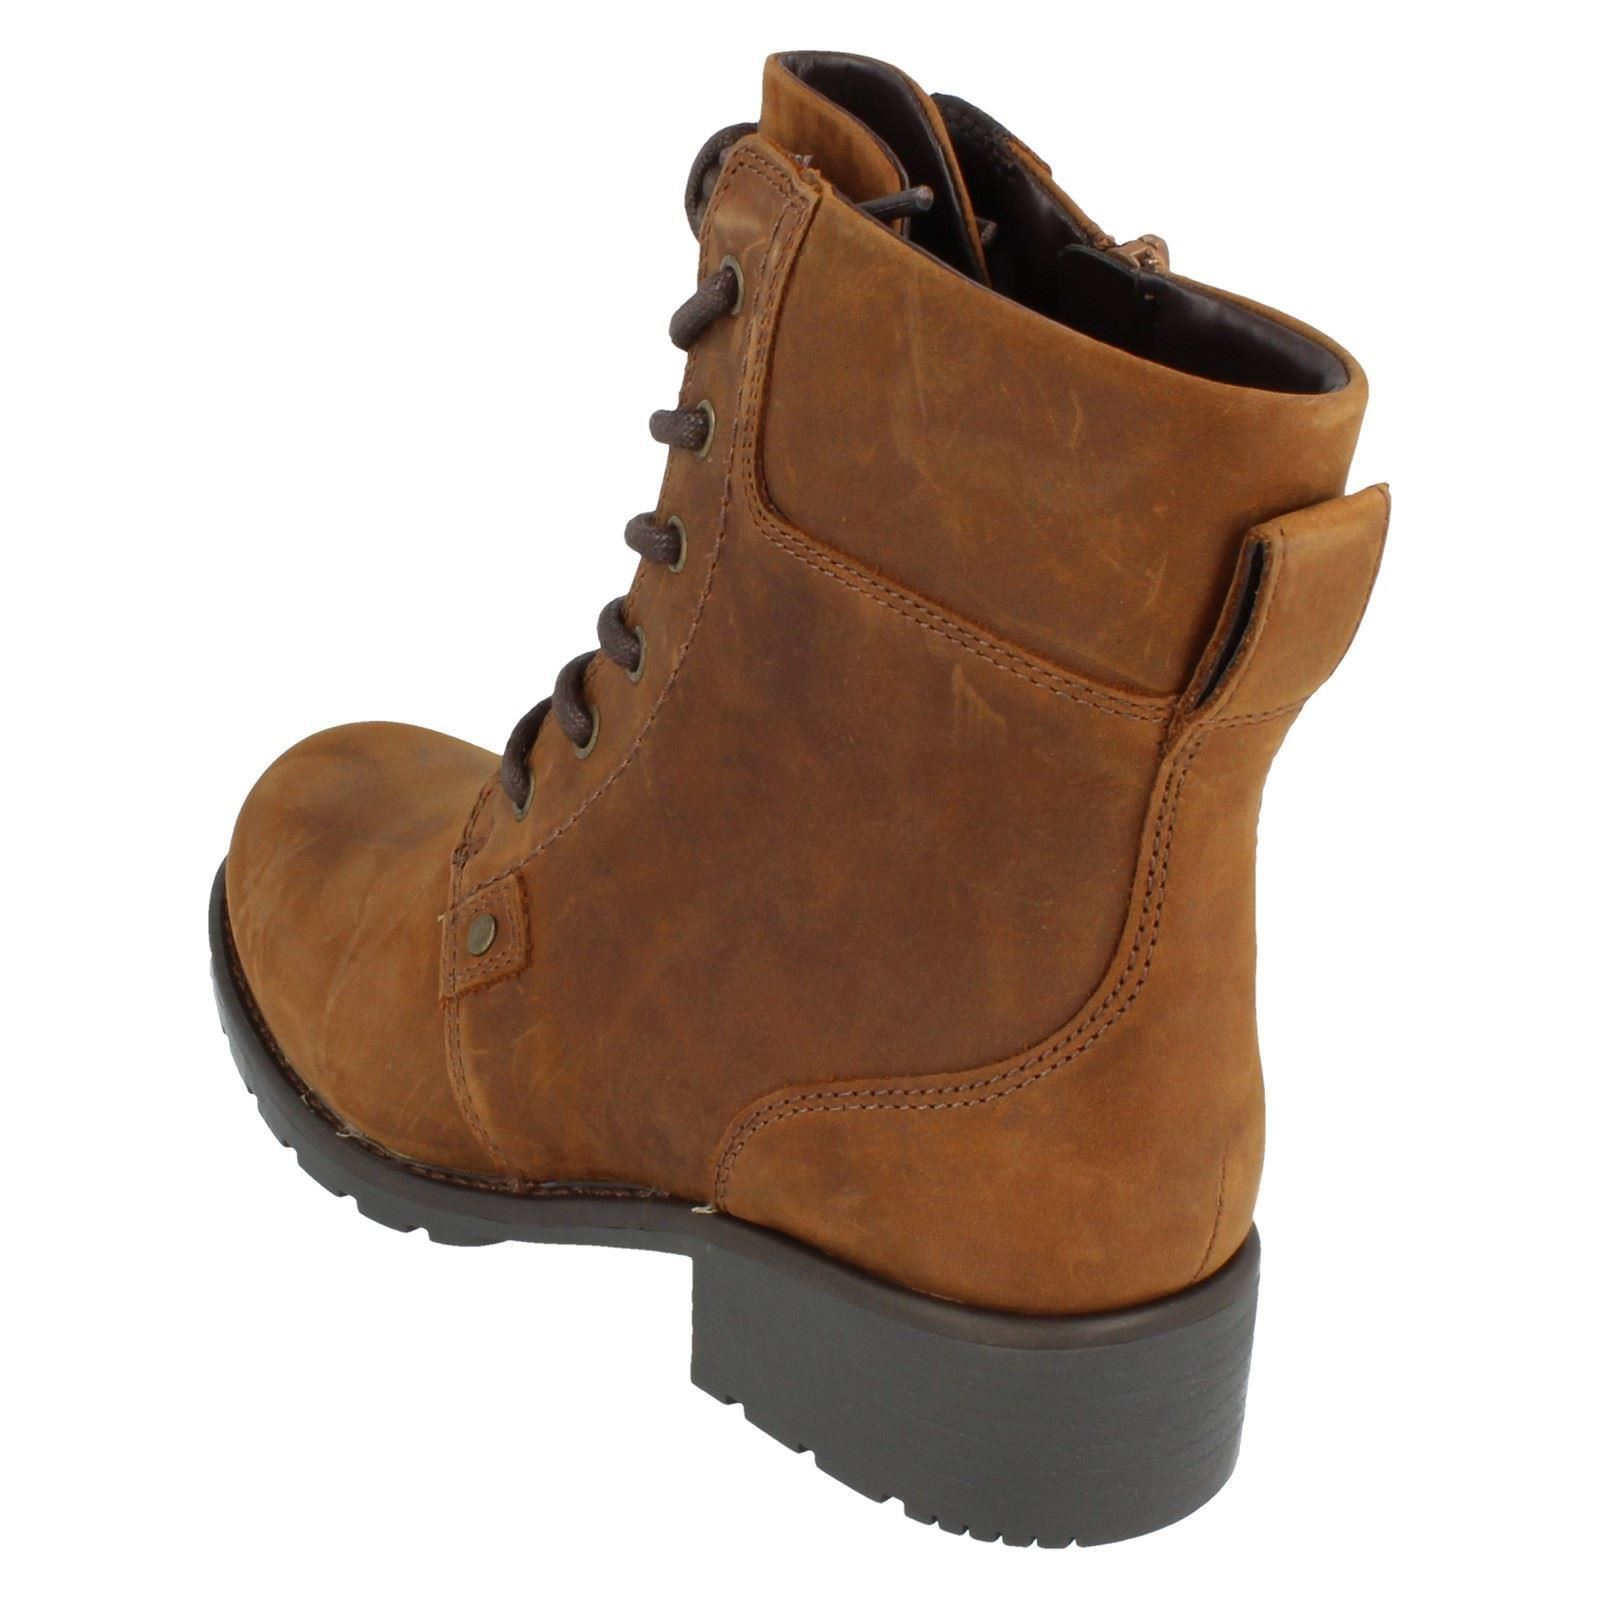 Ladies-Clarks-Casual-Lace-Up-Inside-Zip-Nubuck-Leather-Ankle-Boots-Orinoco-Spice thumbnail 13